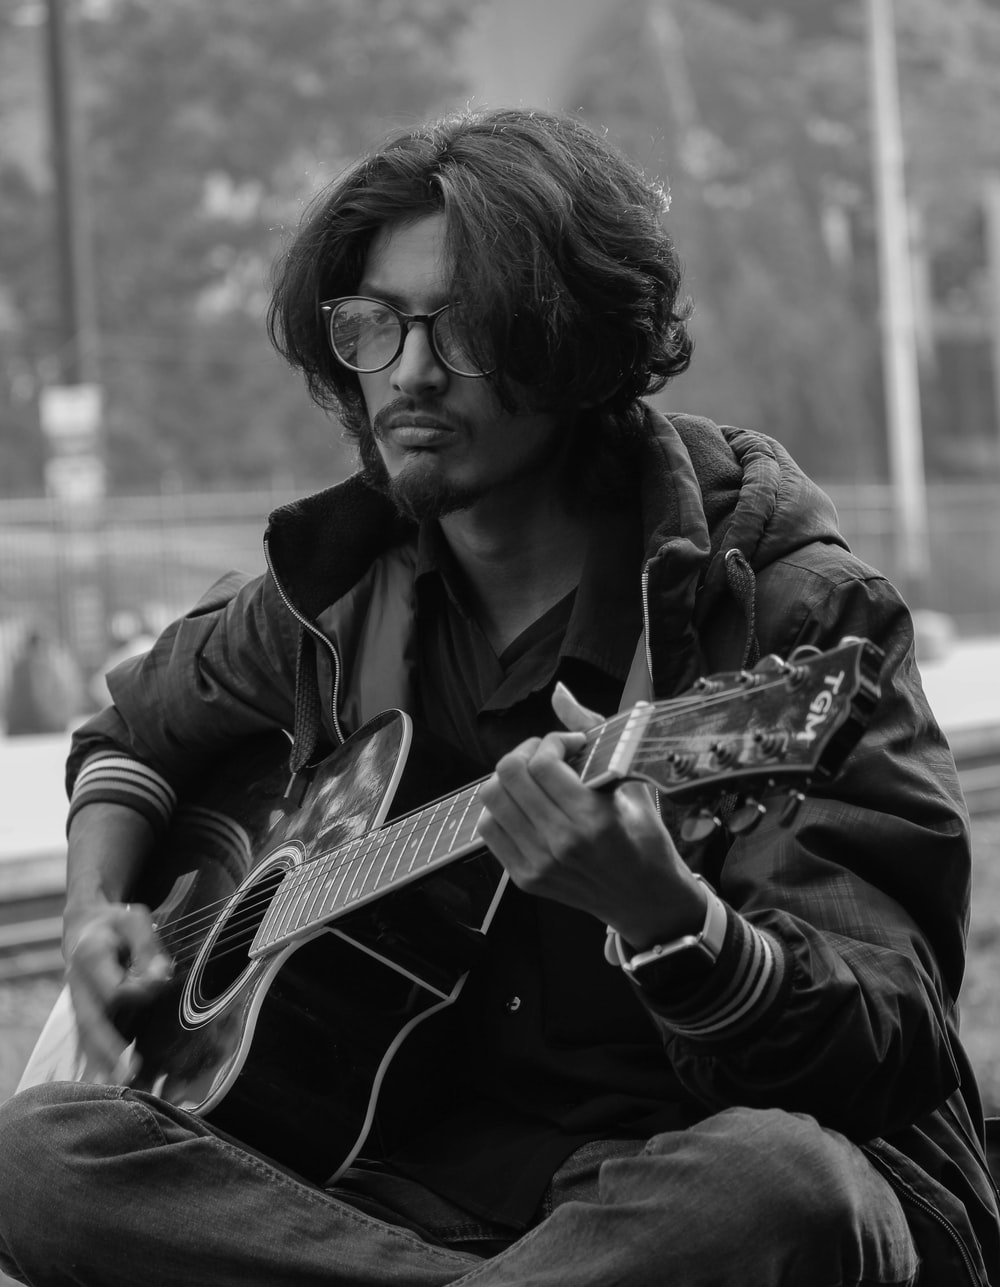 man playing acoustic guitar in grayscale